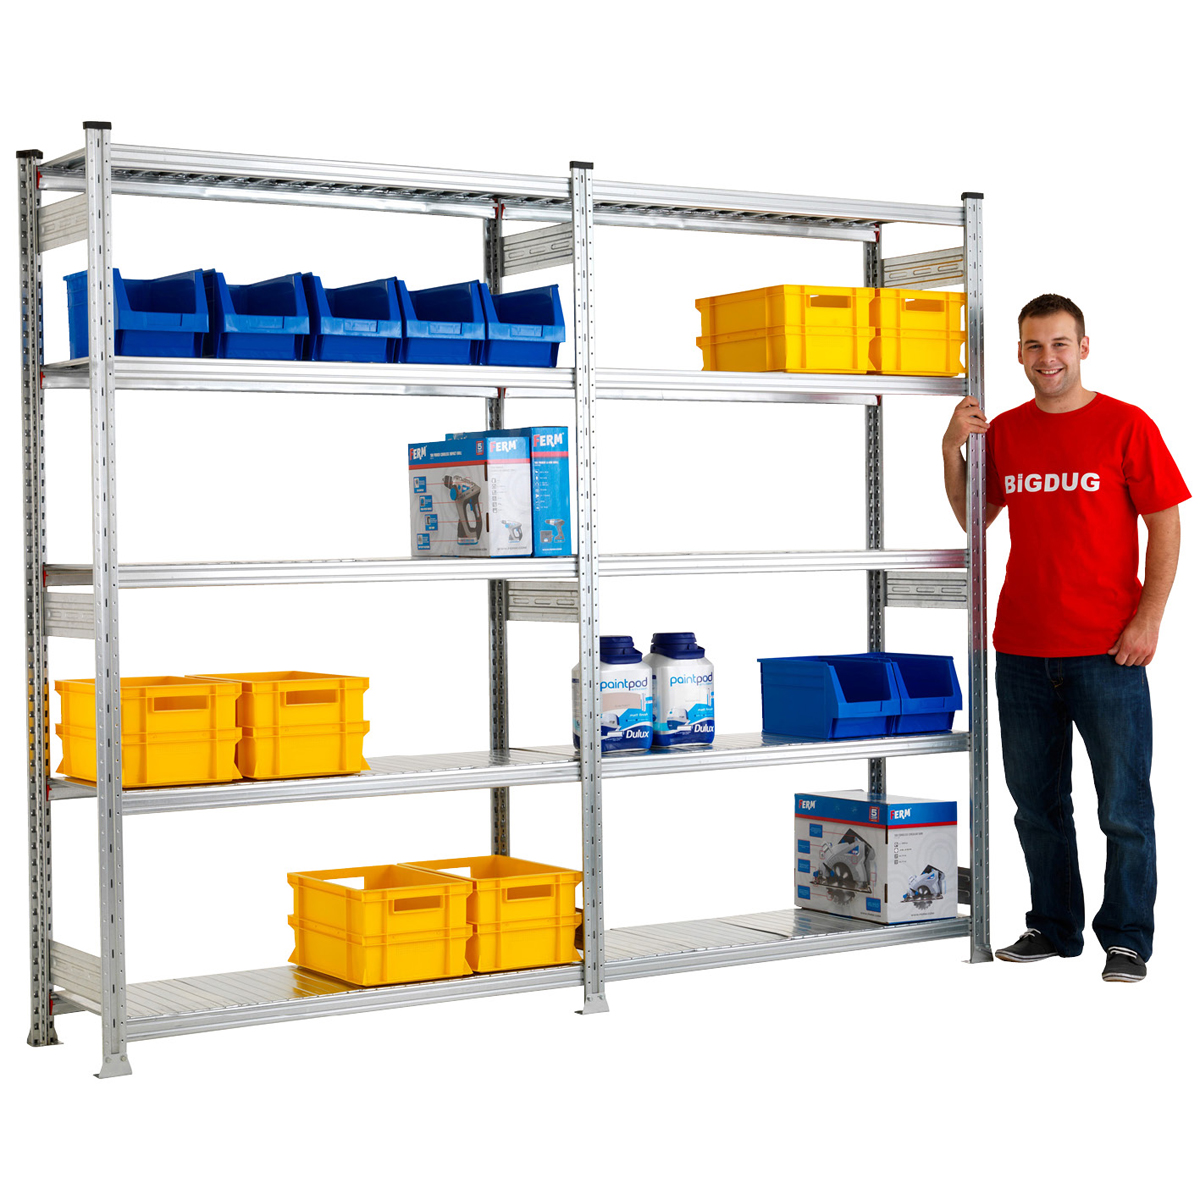 2025mm high Galvanised Shelving and Racking Storage System - 5 levels